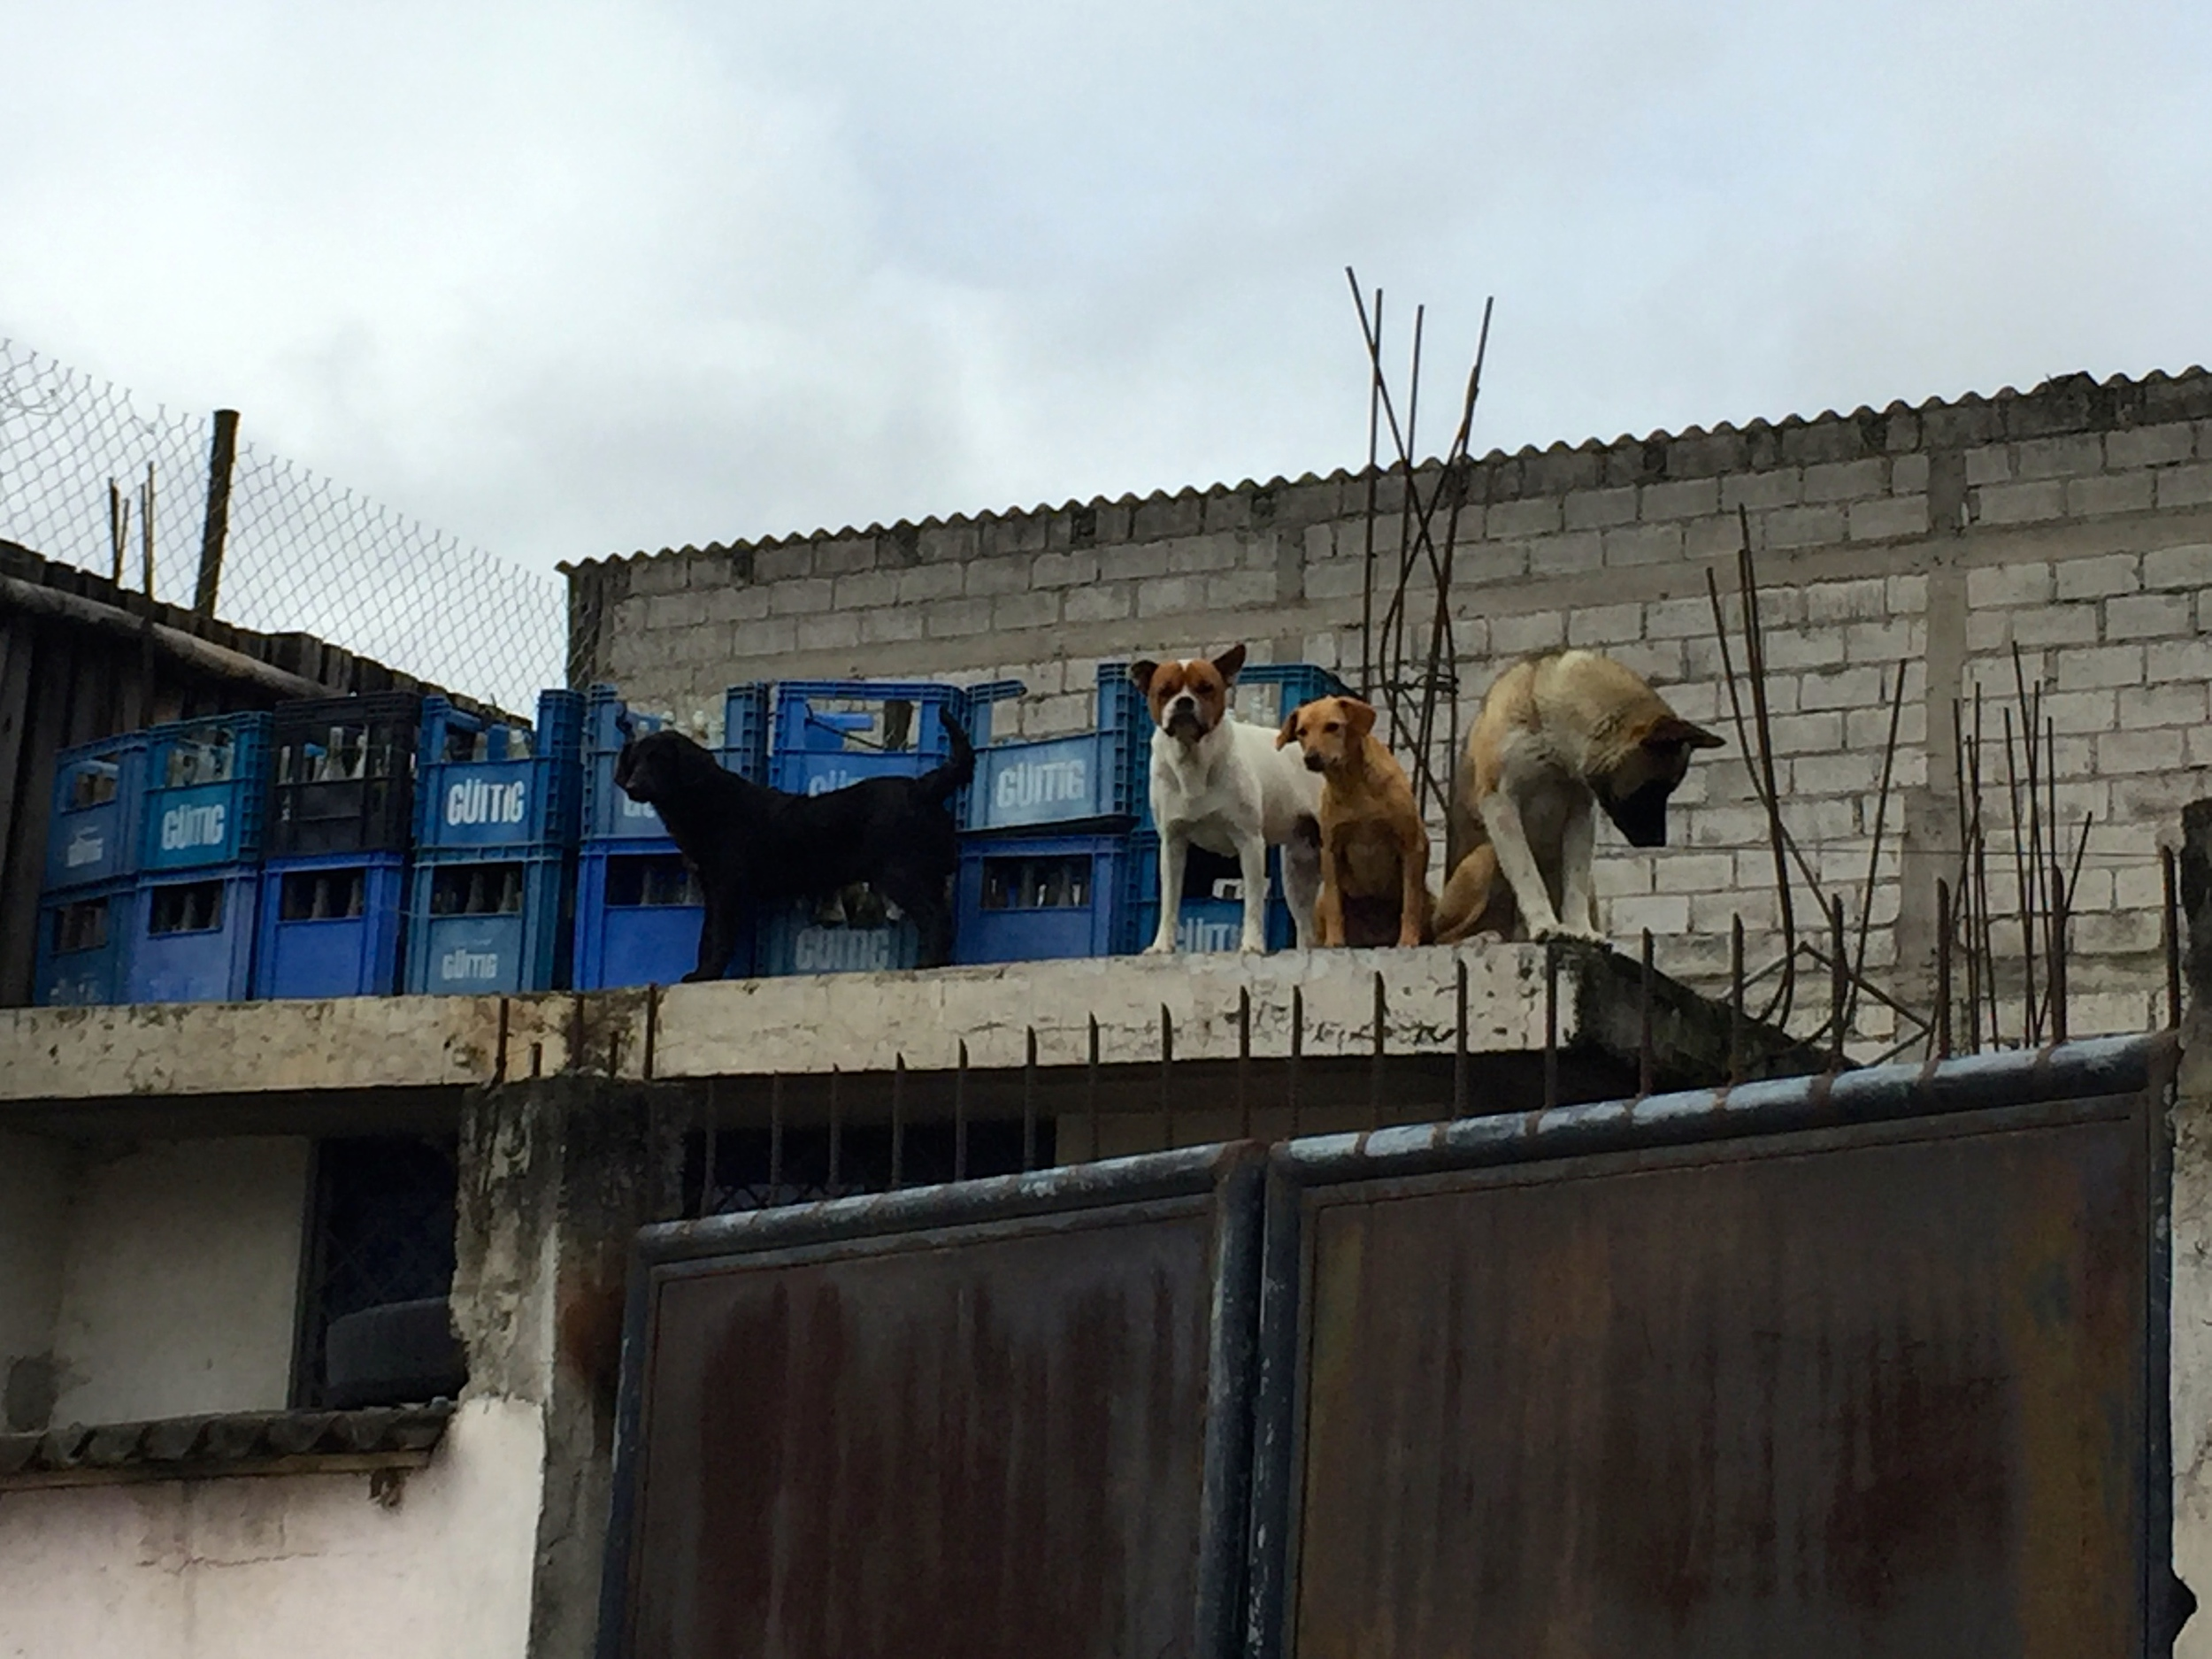 Walking between the animal section of the market and the arts area, we noticed this roof top dog kennel.